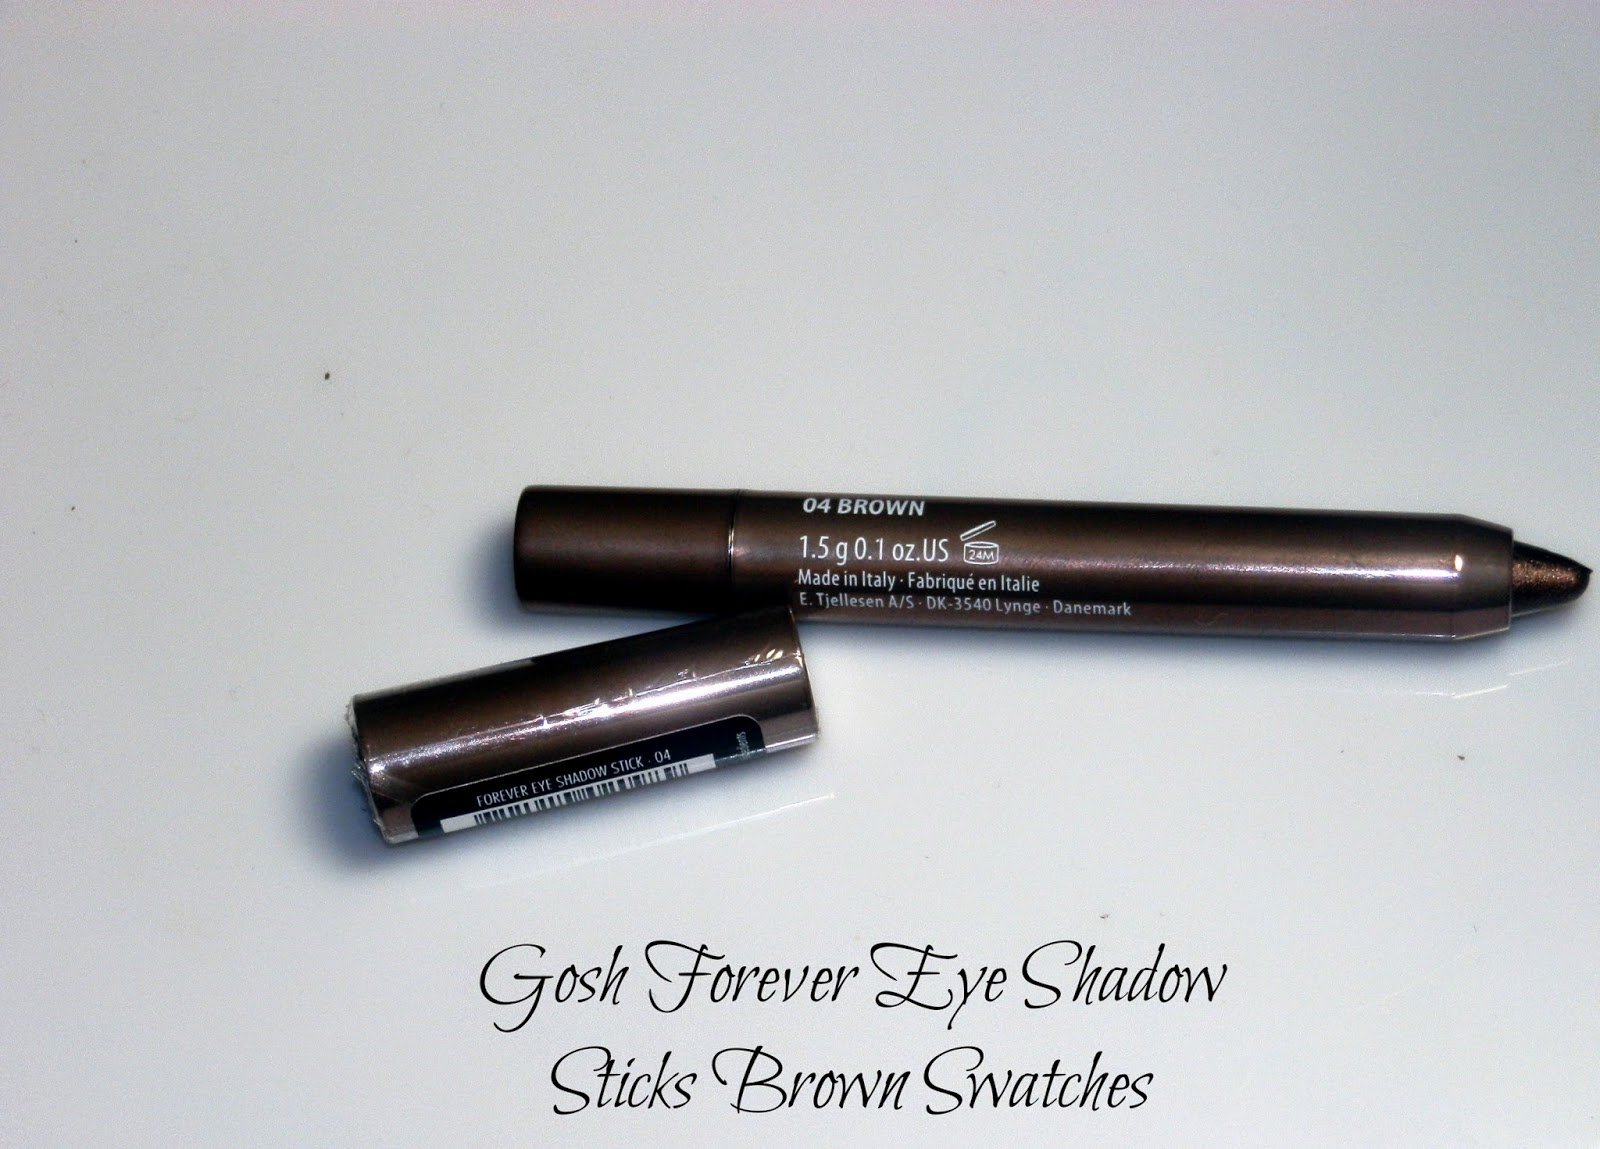 Gosh Forever Eye Shadow Sticks Brown Swatches